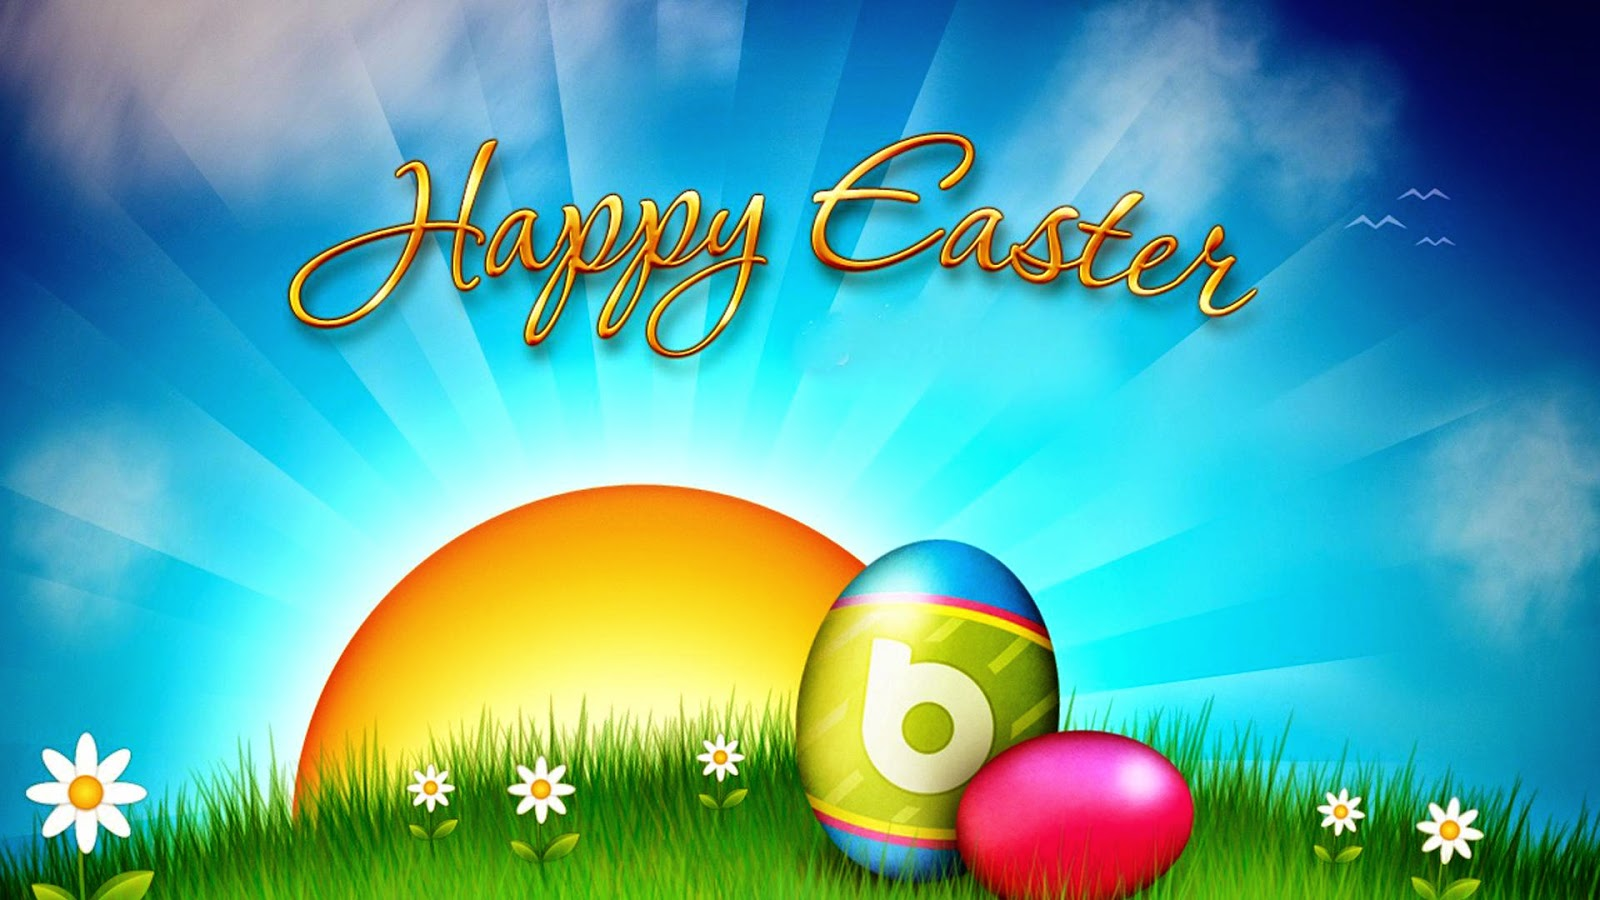 can either send SMS to your friends or write these happy Easter quotes ...